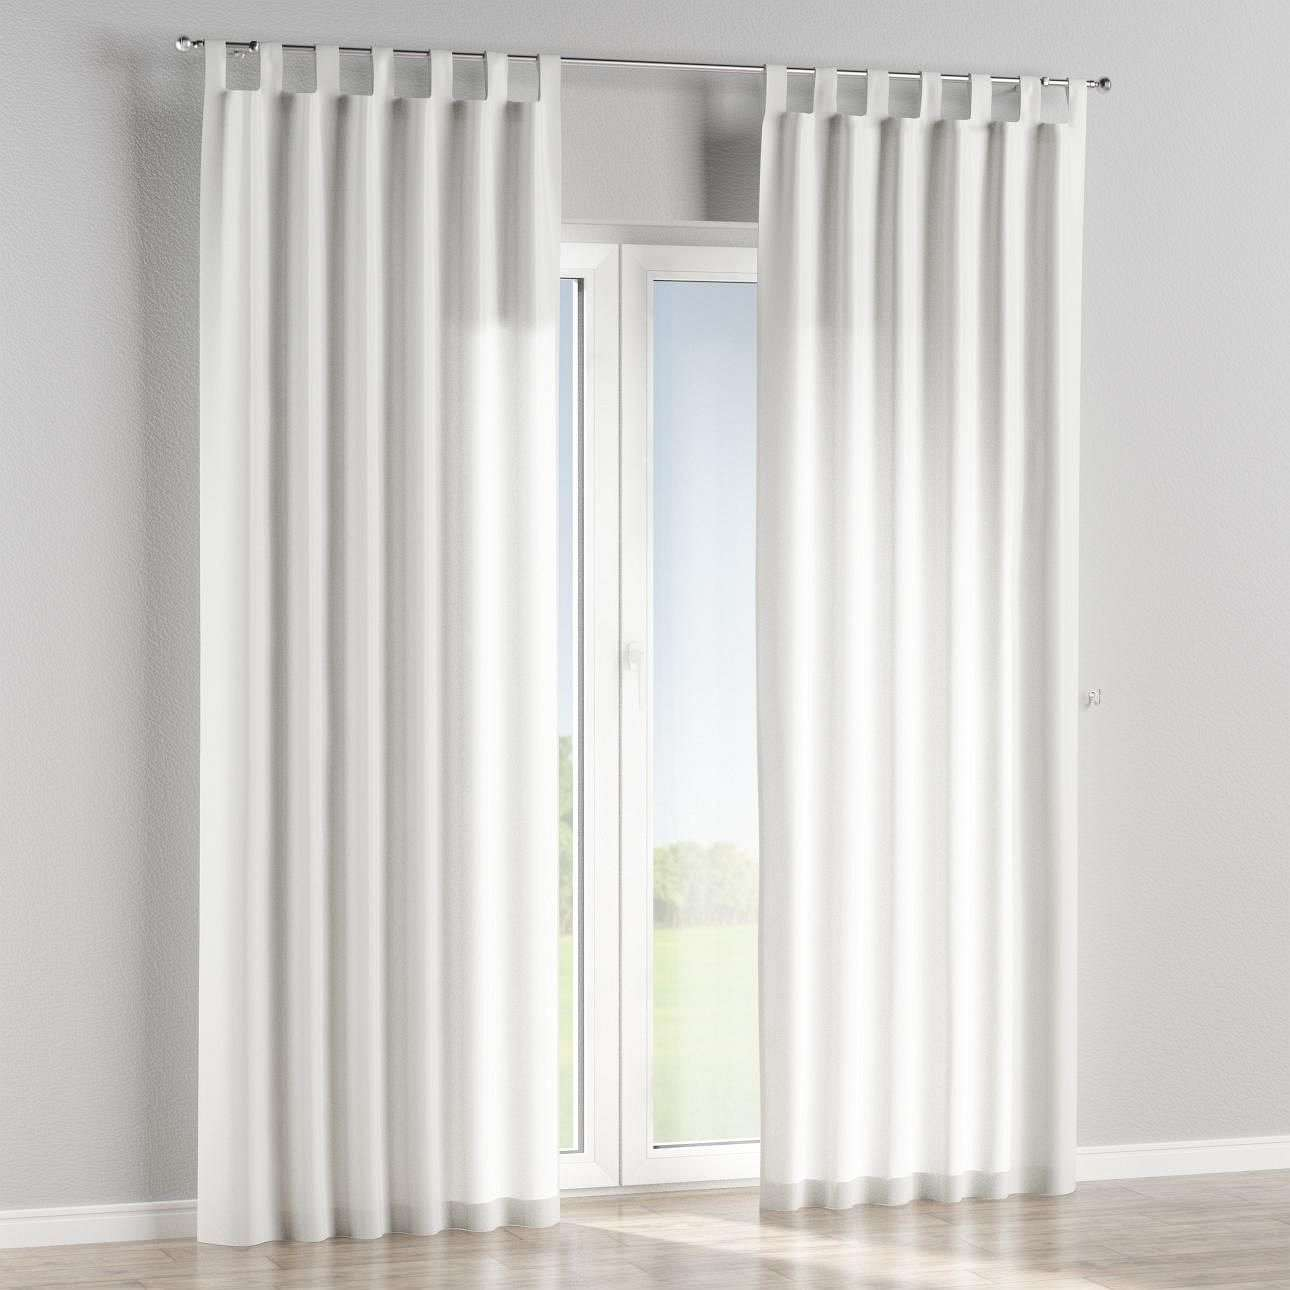 Tab top lined curtains in collection Rustica, fabric: 140-32